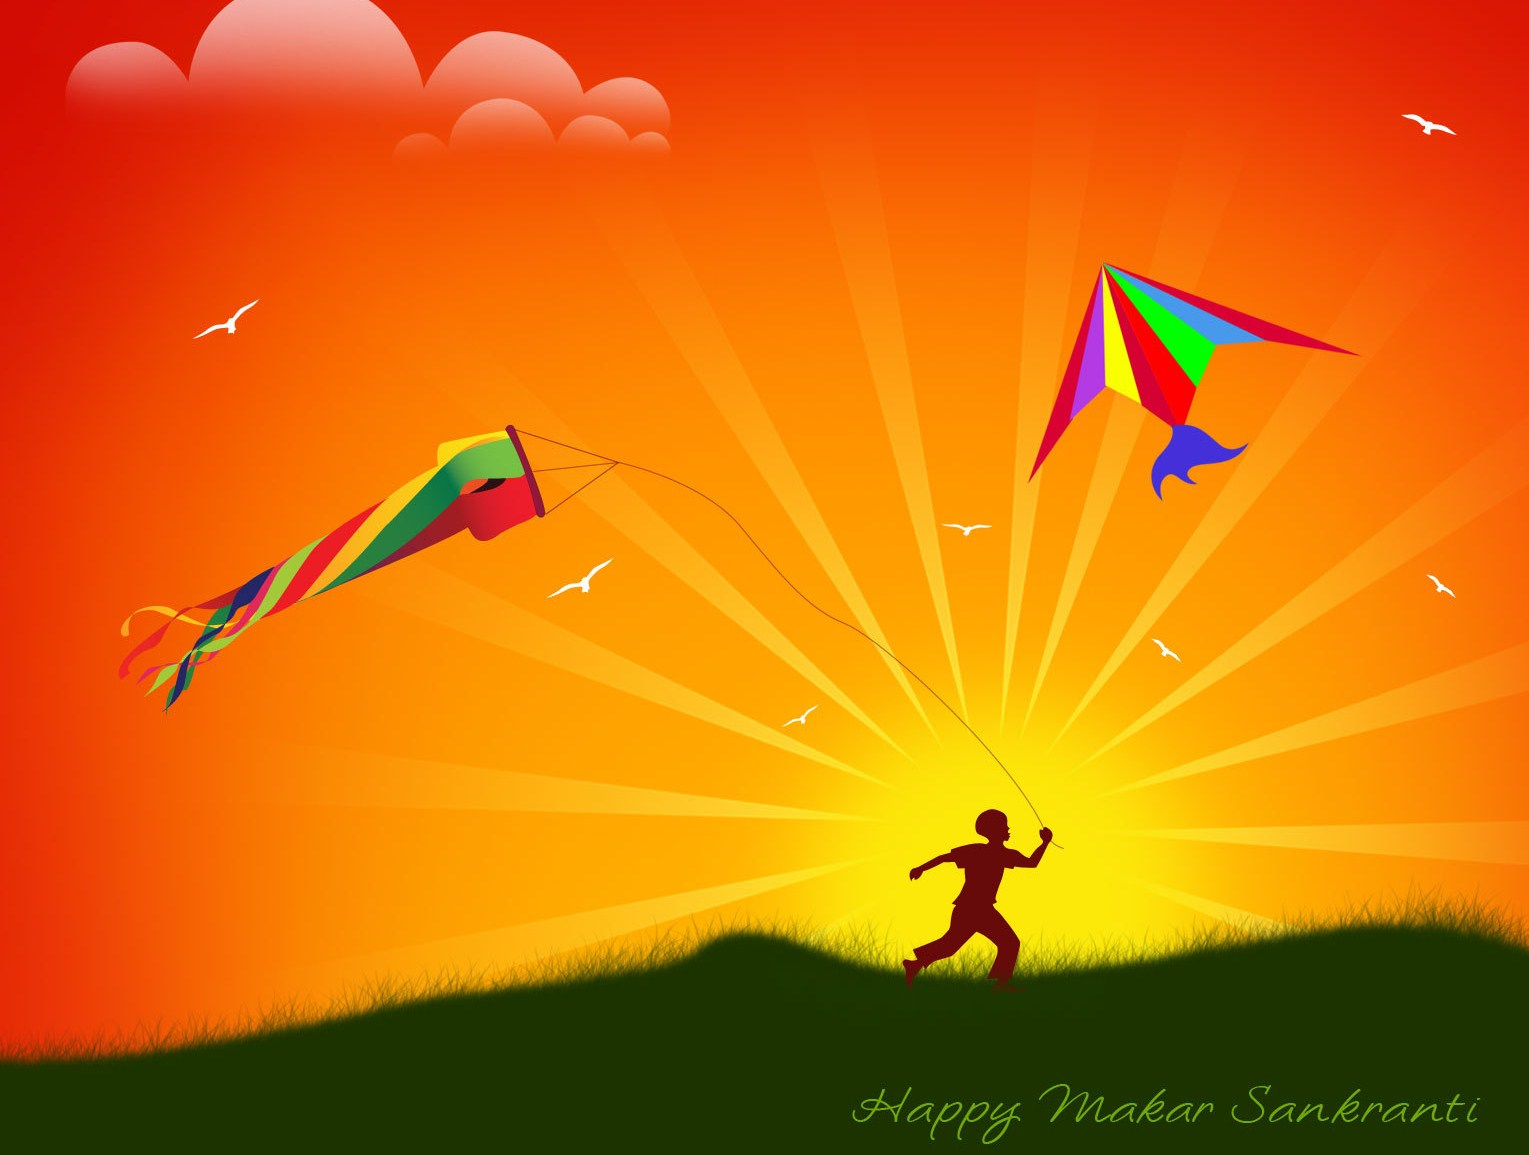 Kites Images Wallpapers   59 Group Wallpapers 1529x1155